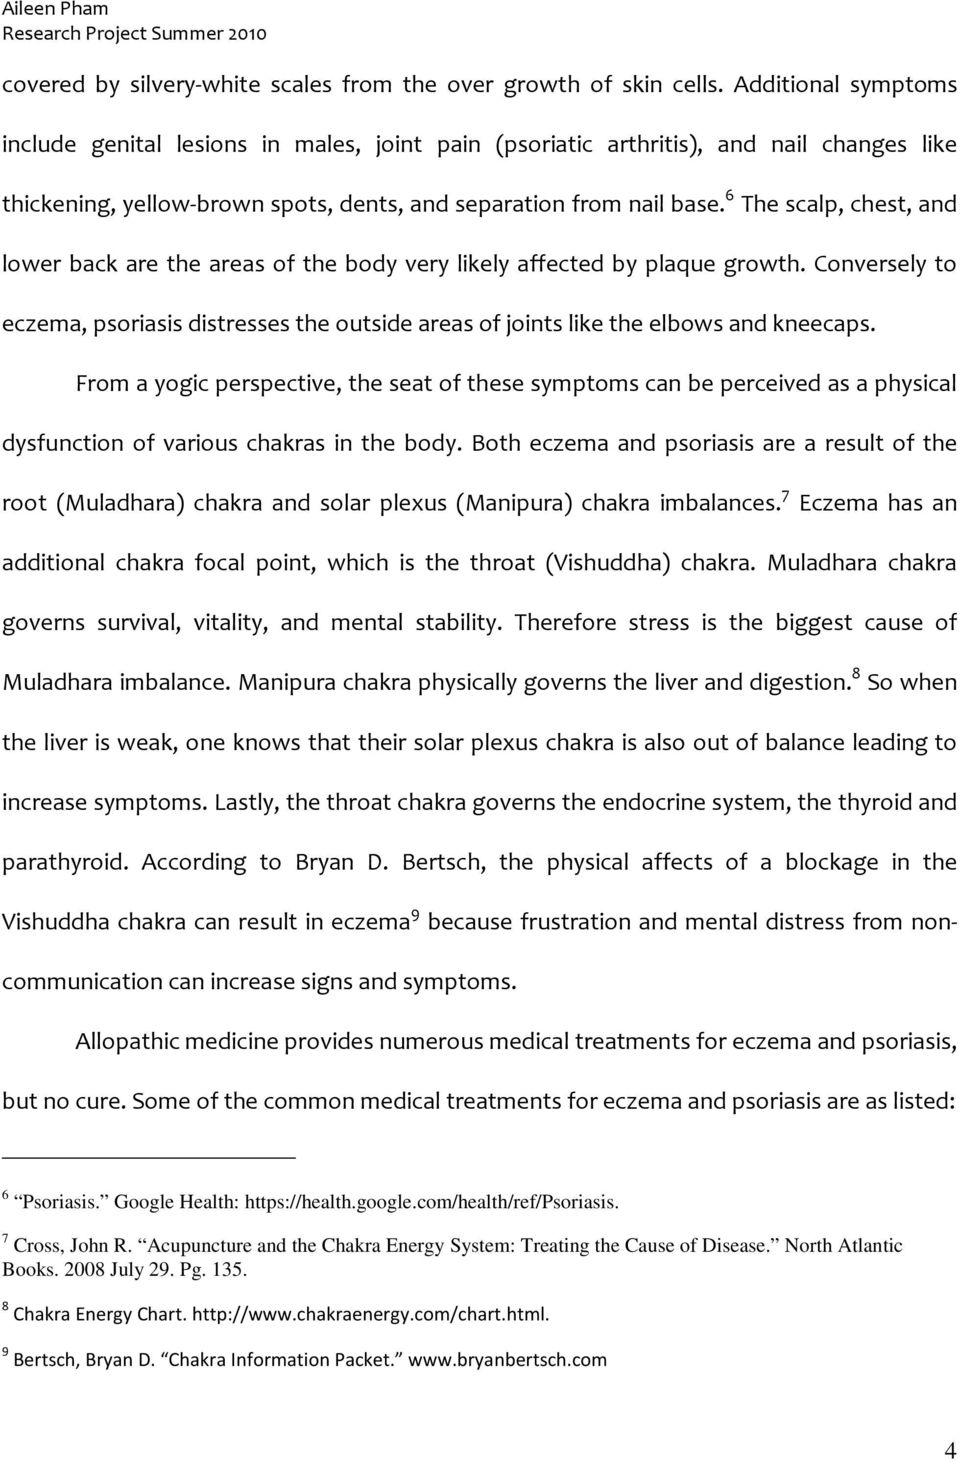 YOGIC TREATMENT OF DISEASE Eczema and Psoriasis - PDF